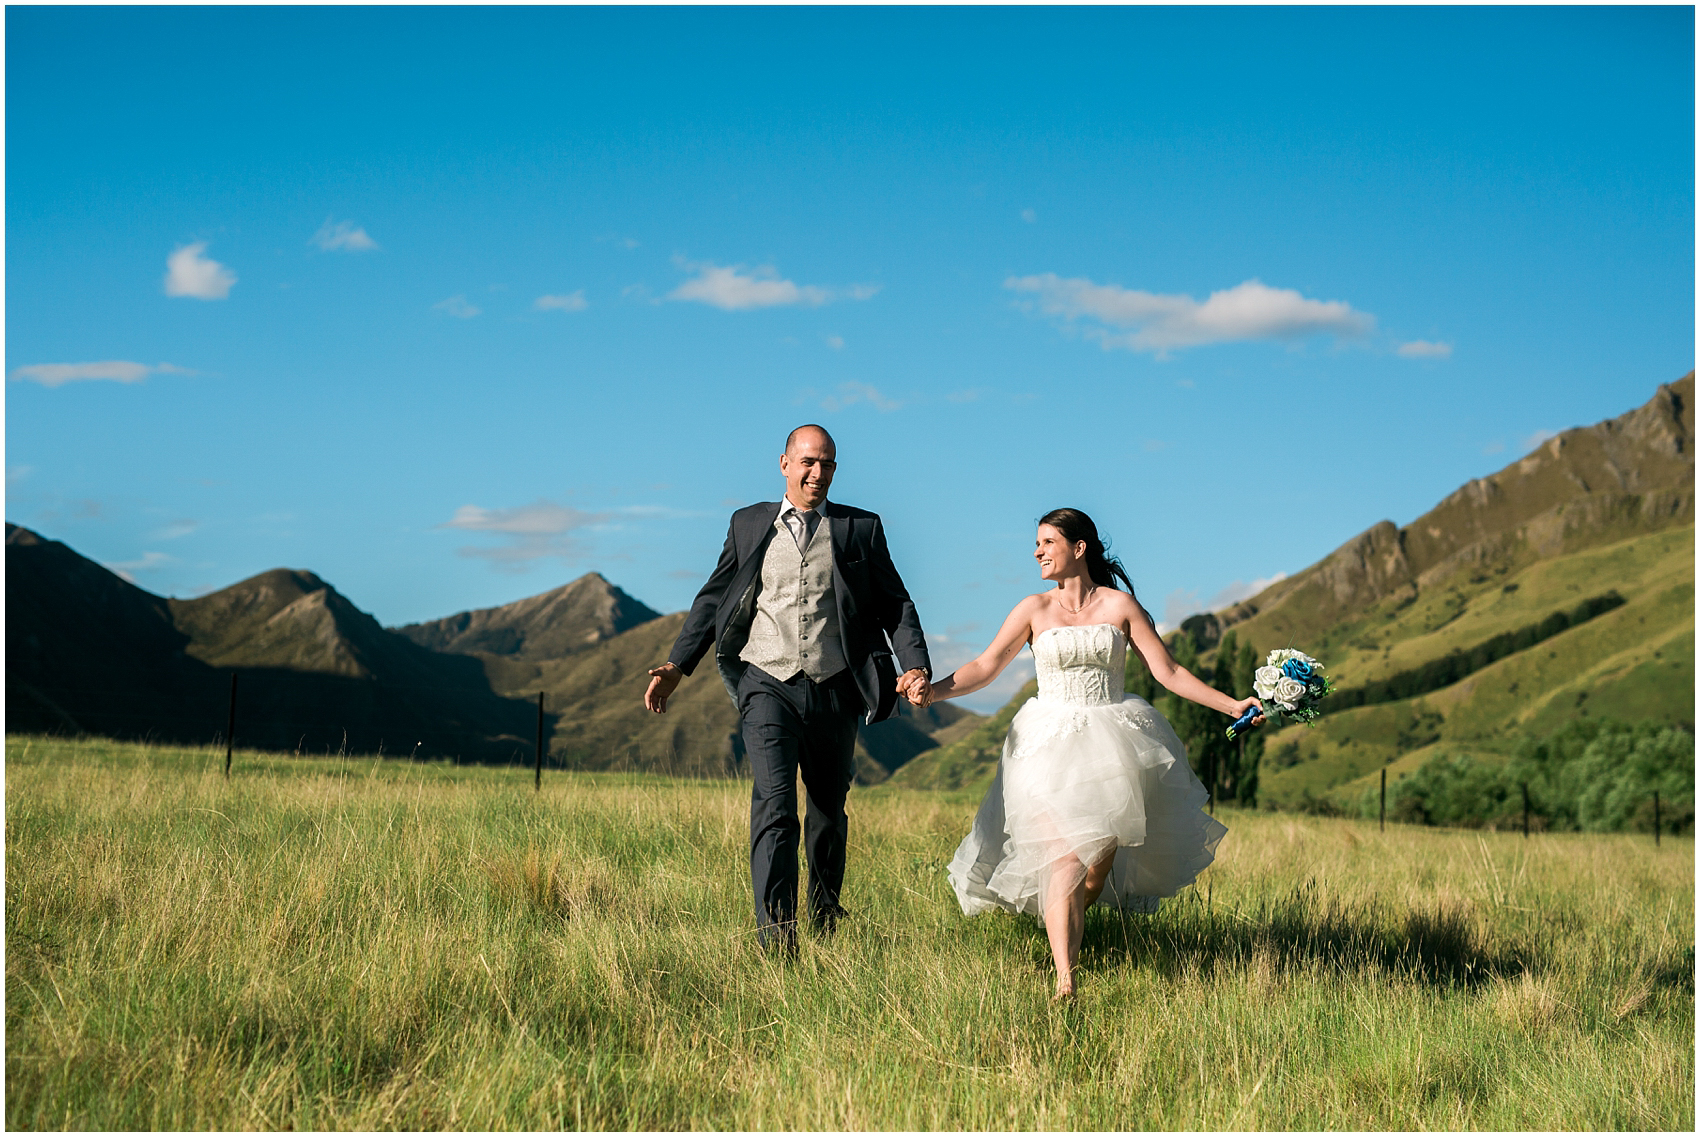 Queenstown New Zealand Wedding Photographer Bruna Fabricio Smetona Photo-0057.jpg